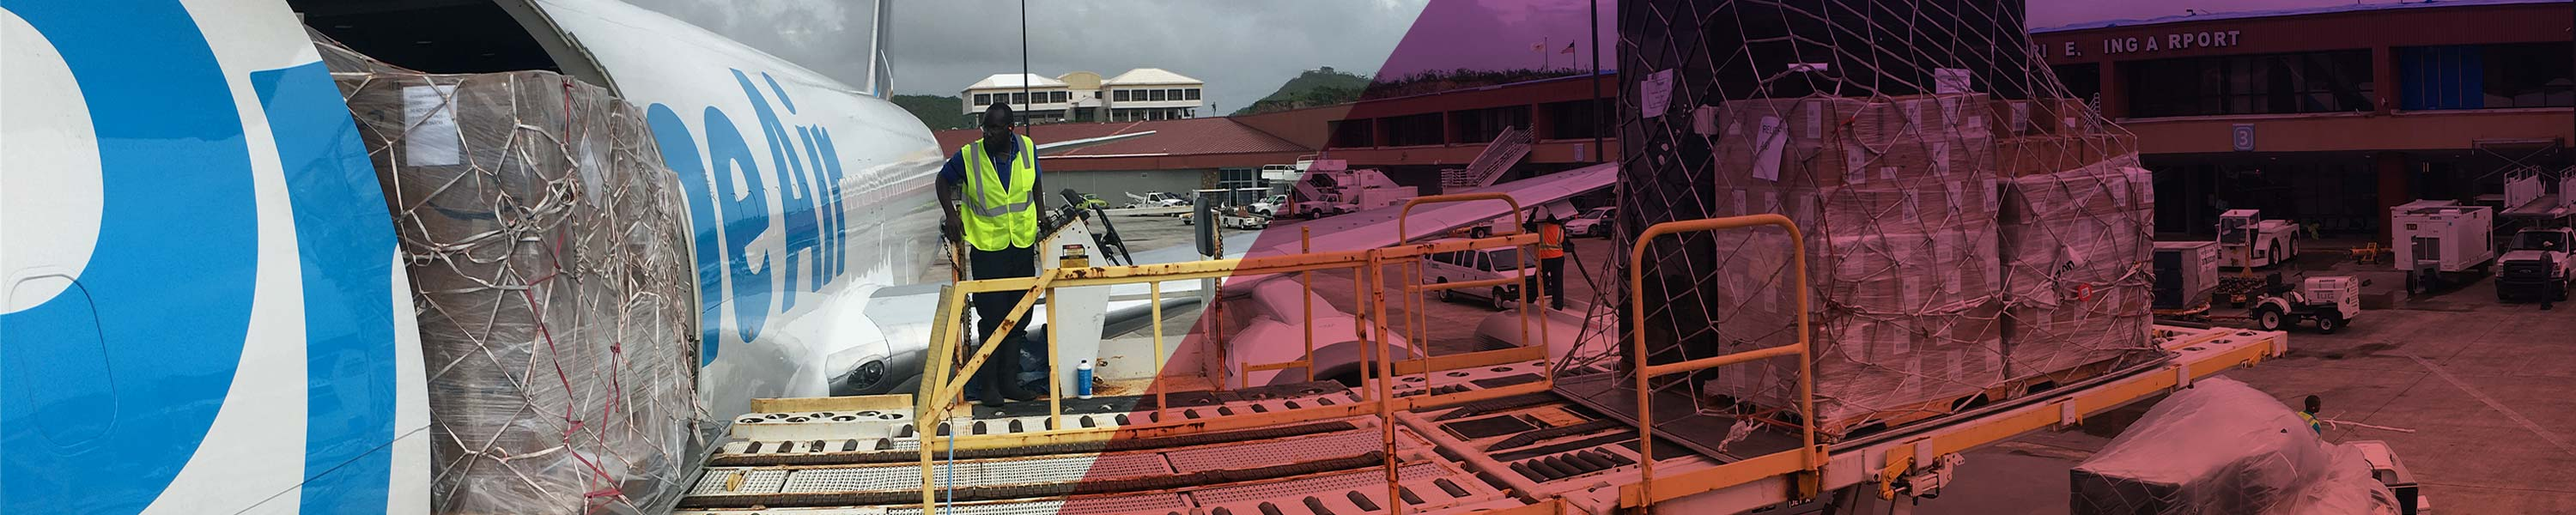 Relief is on its way. Help us fill more planes for the Bahamas.